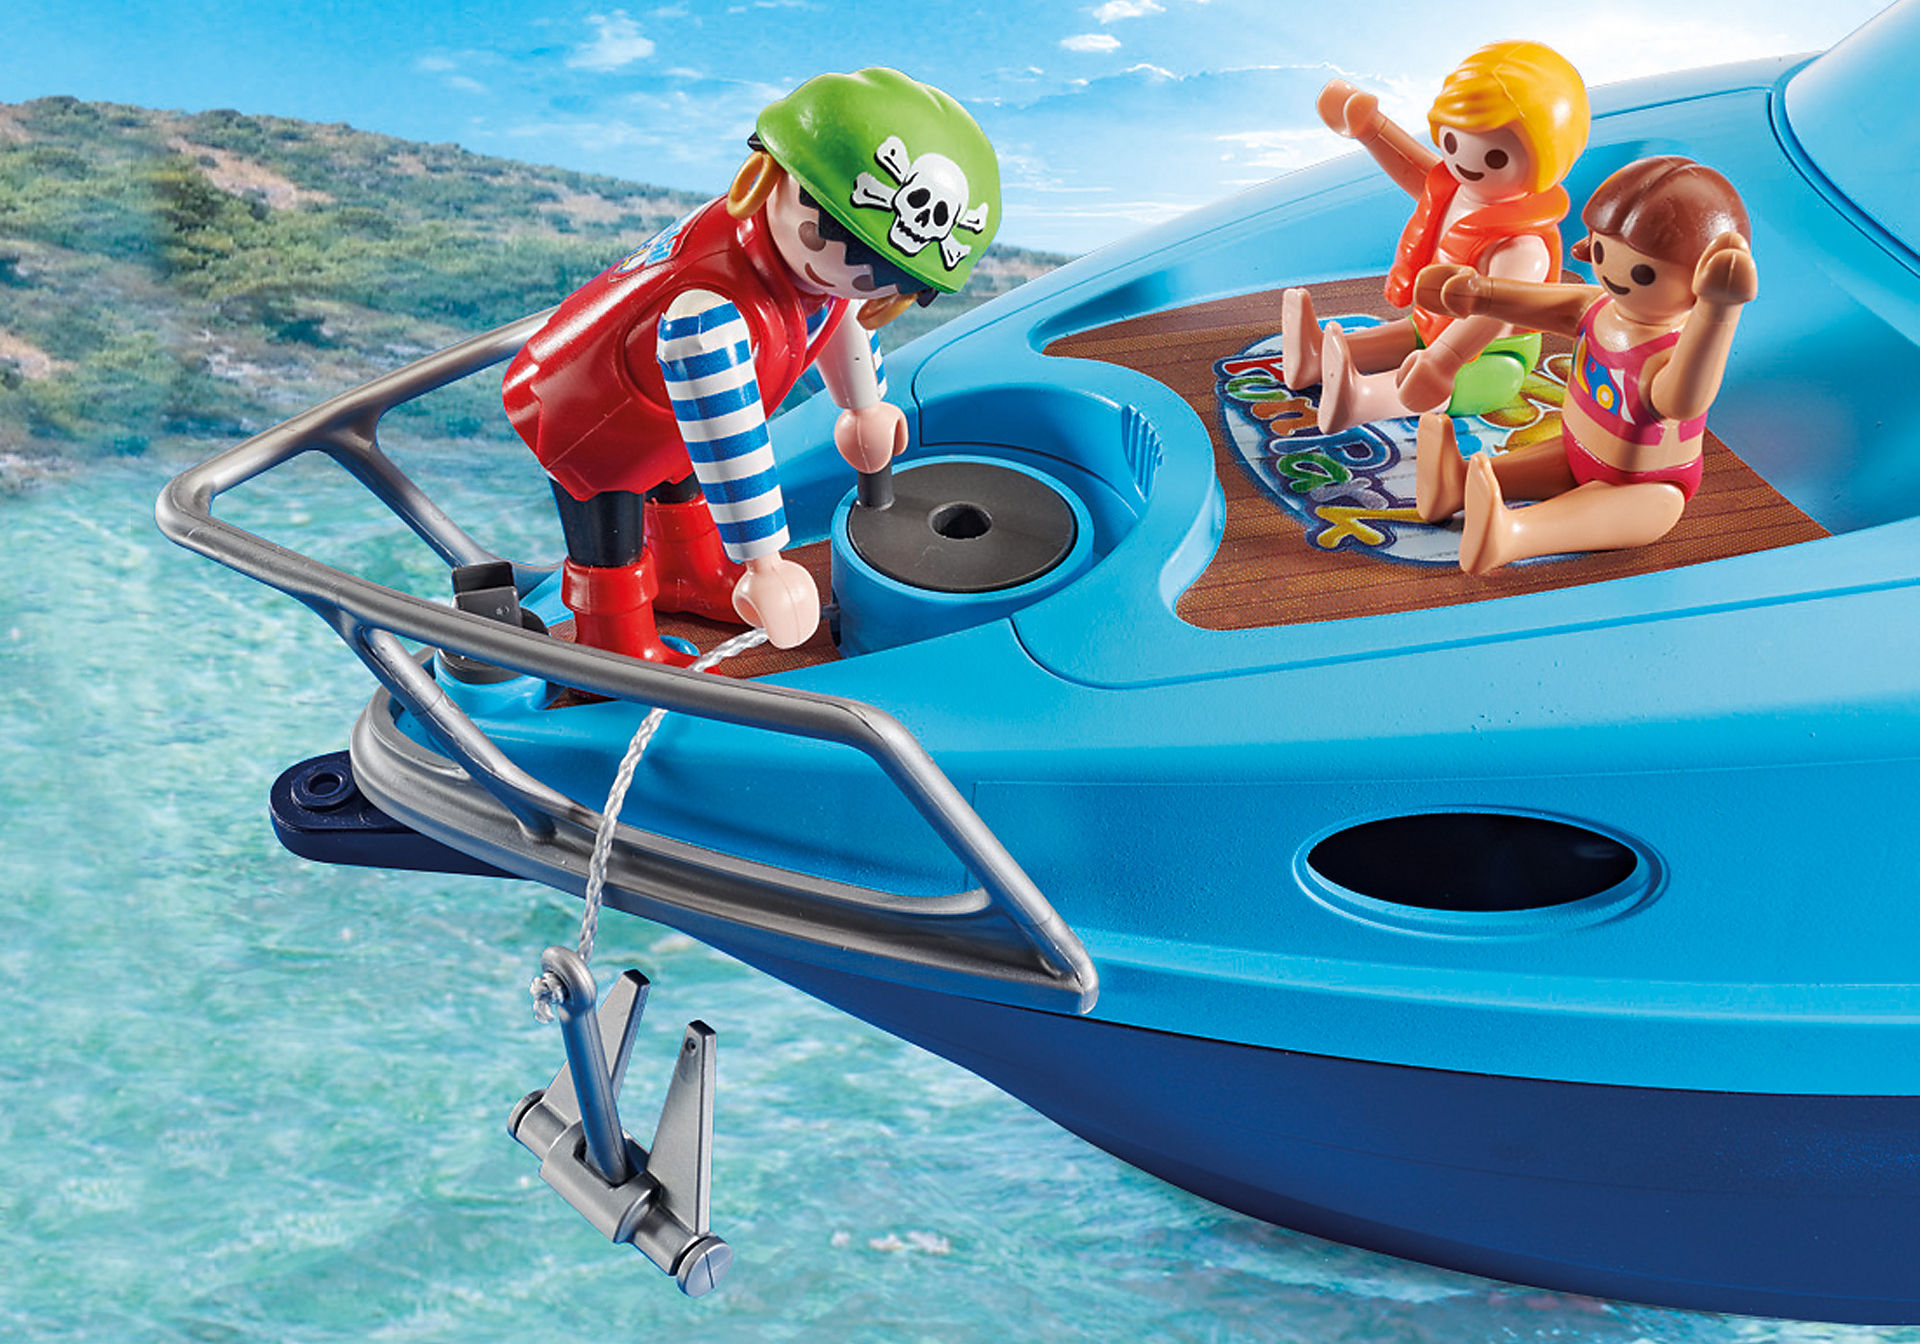 70630 PLAYMOBIL-FunPark Yacht zoom image5